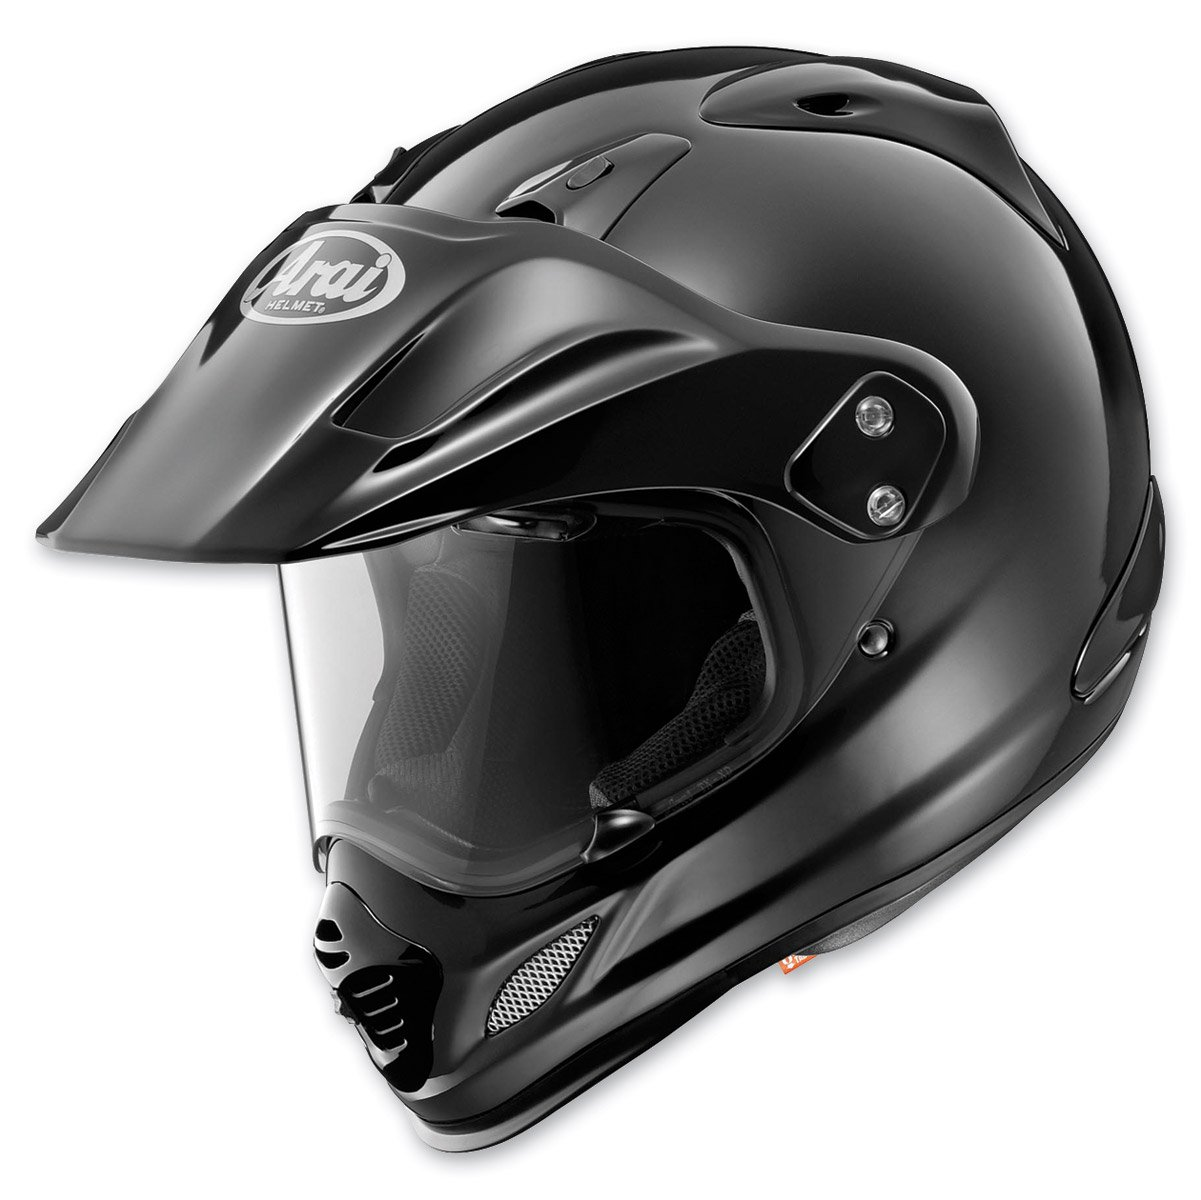 Arai XD4 Helmet (Black, Small)